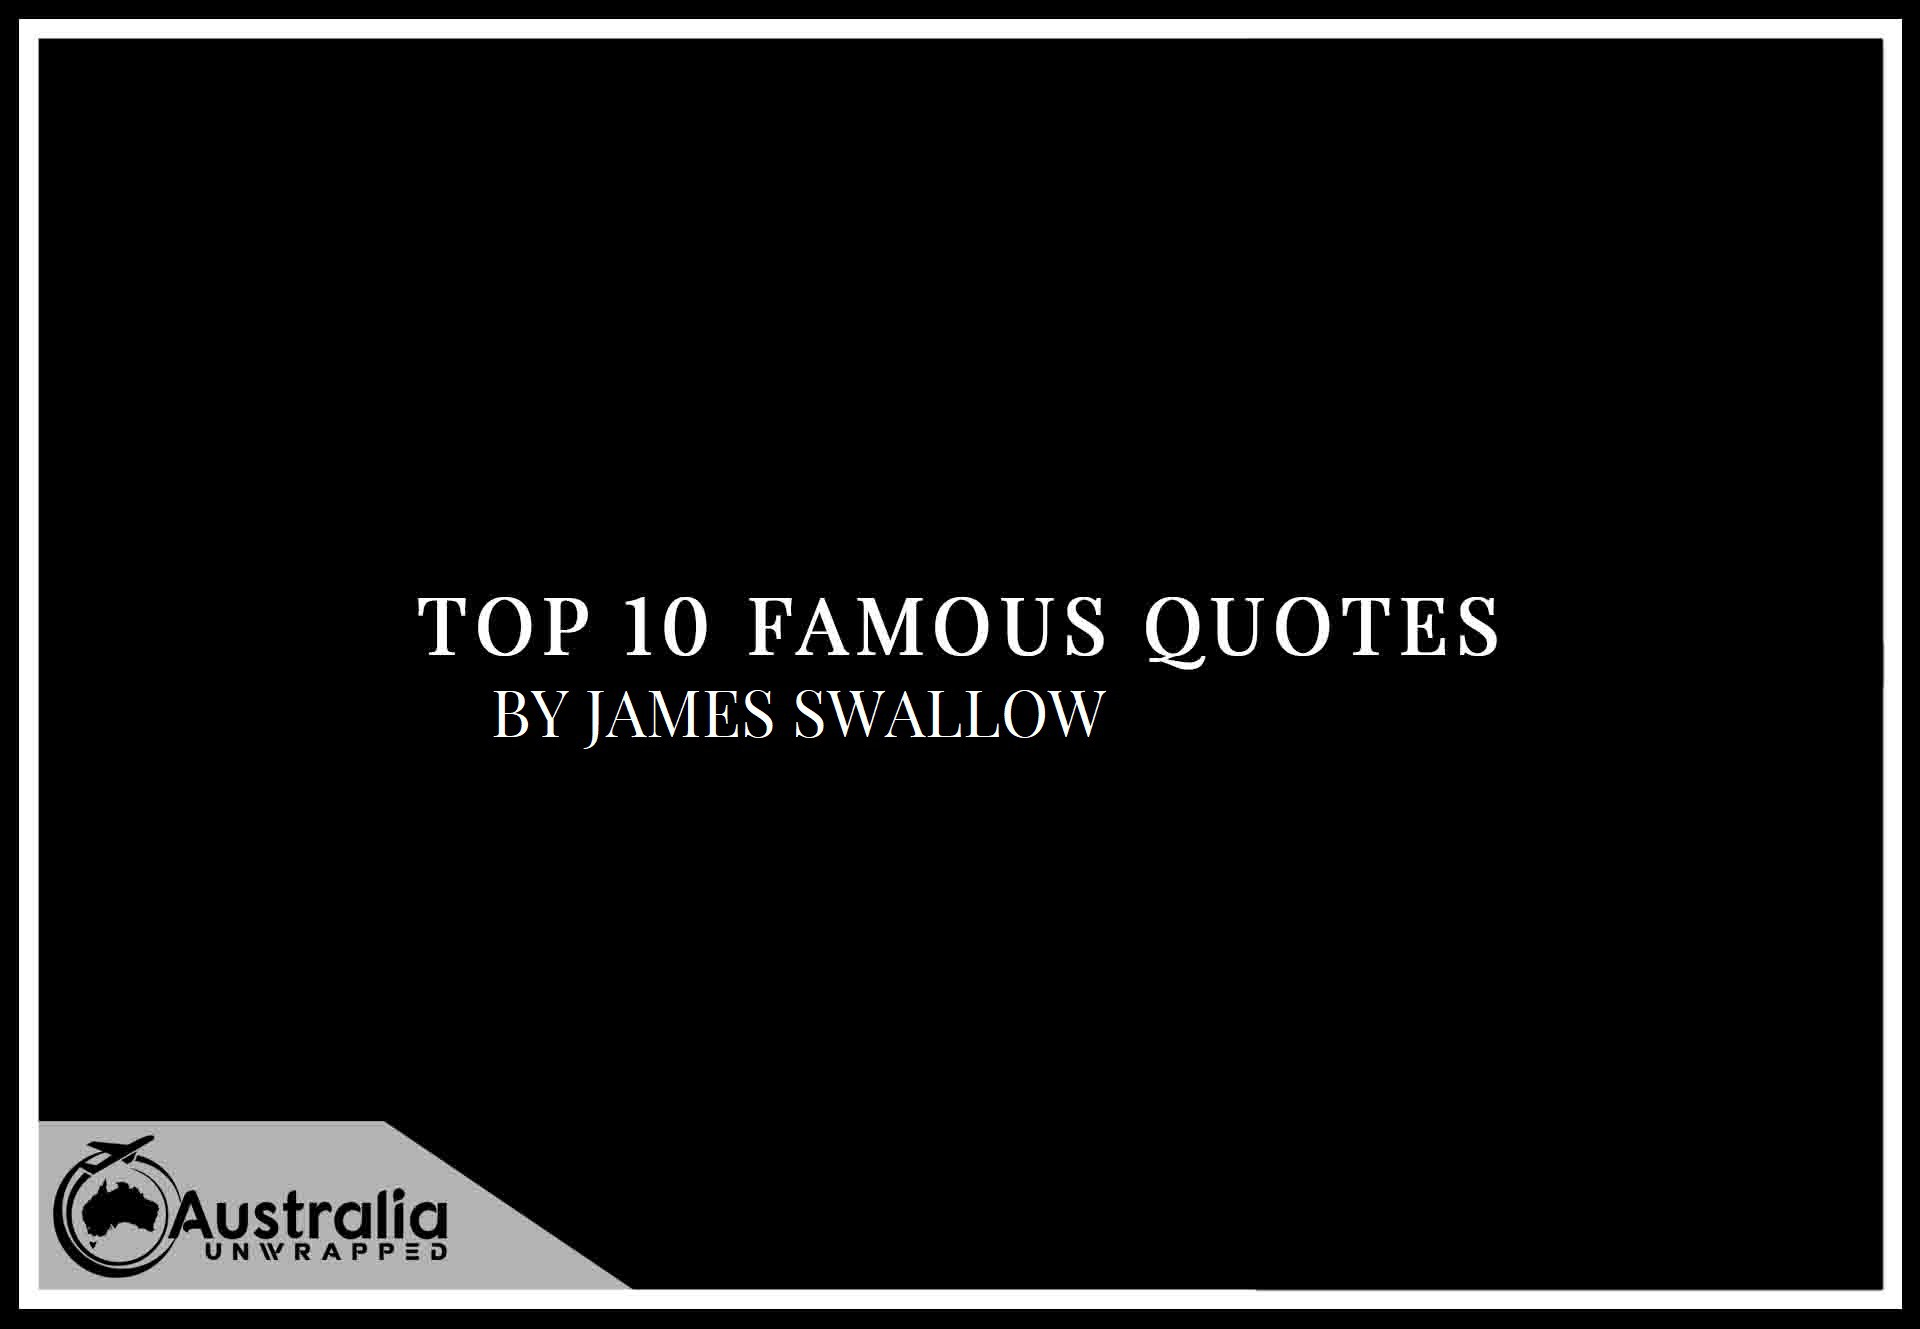 Top 10 Famous Quotes by Author James Swallow